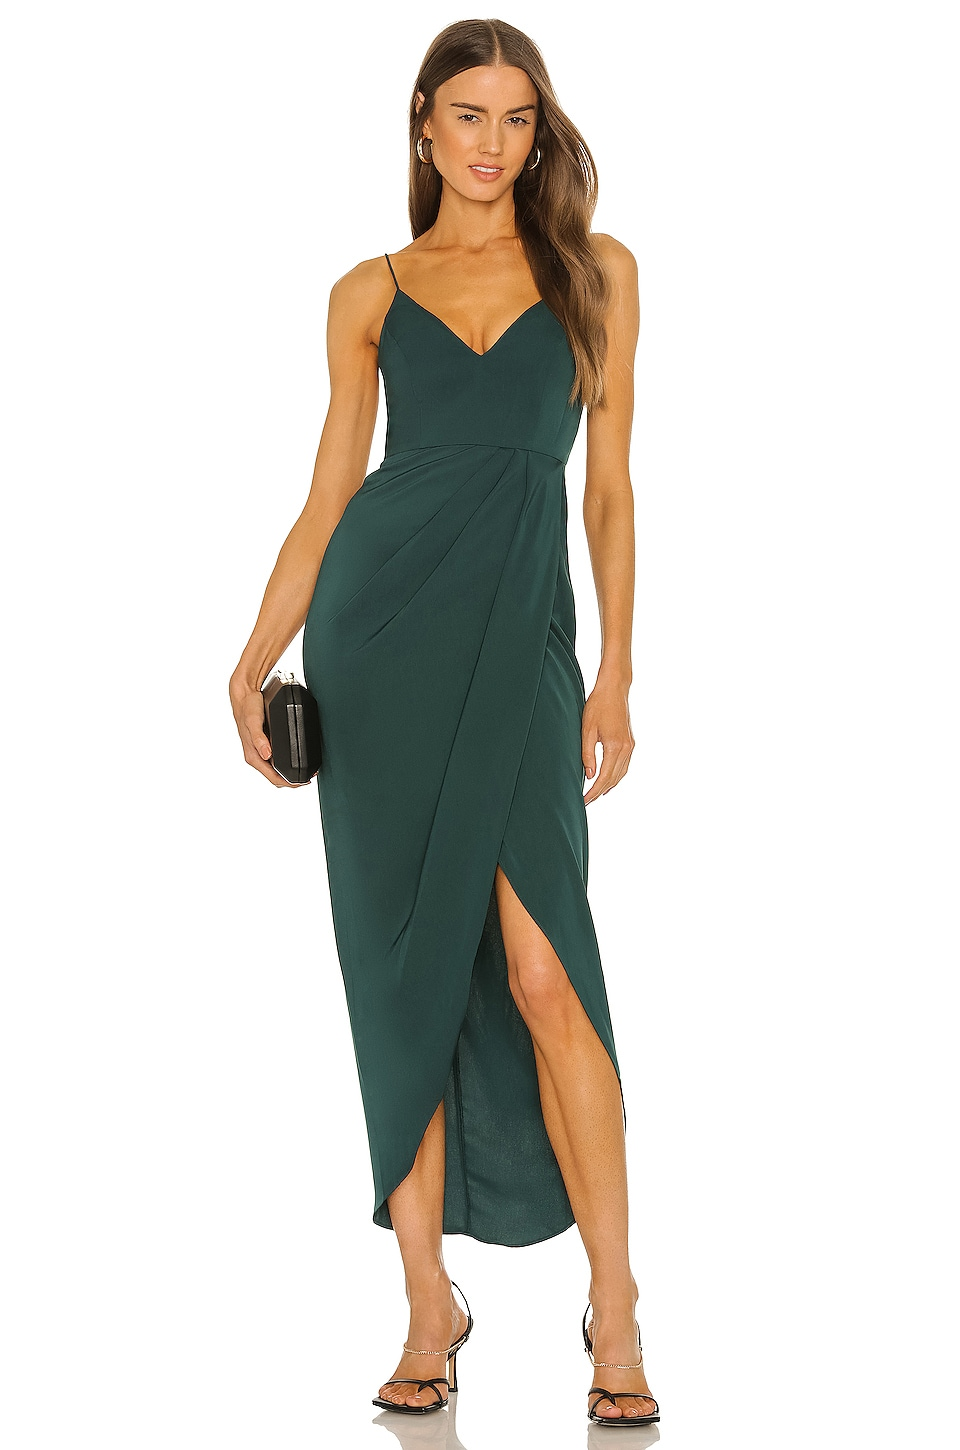 Shona Joy Cocktail Draped Dress in Seaweed | REVOLVE